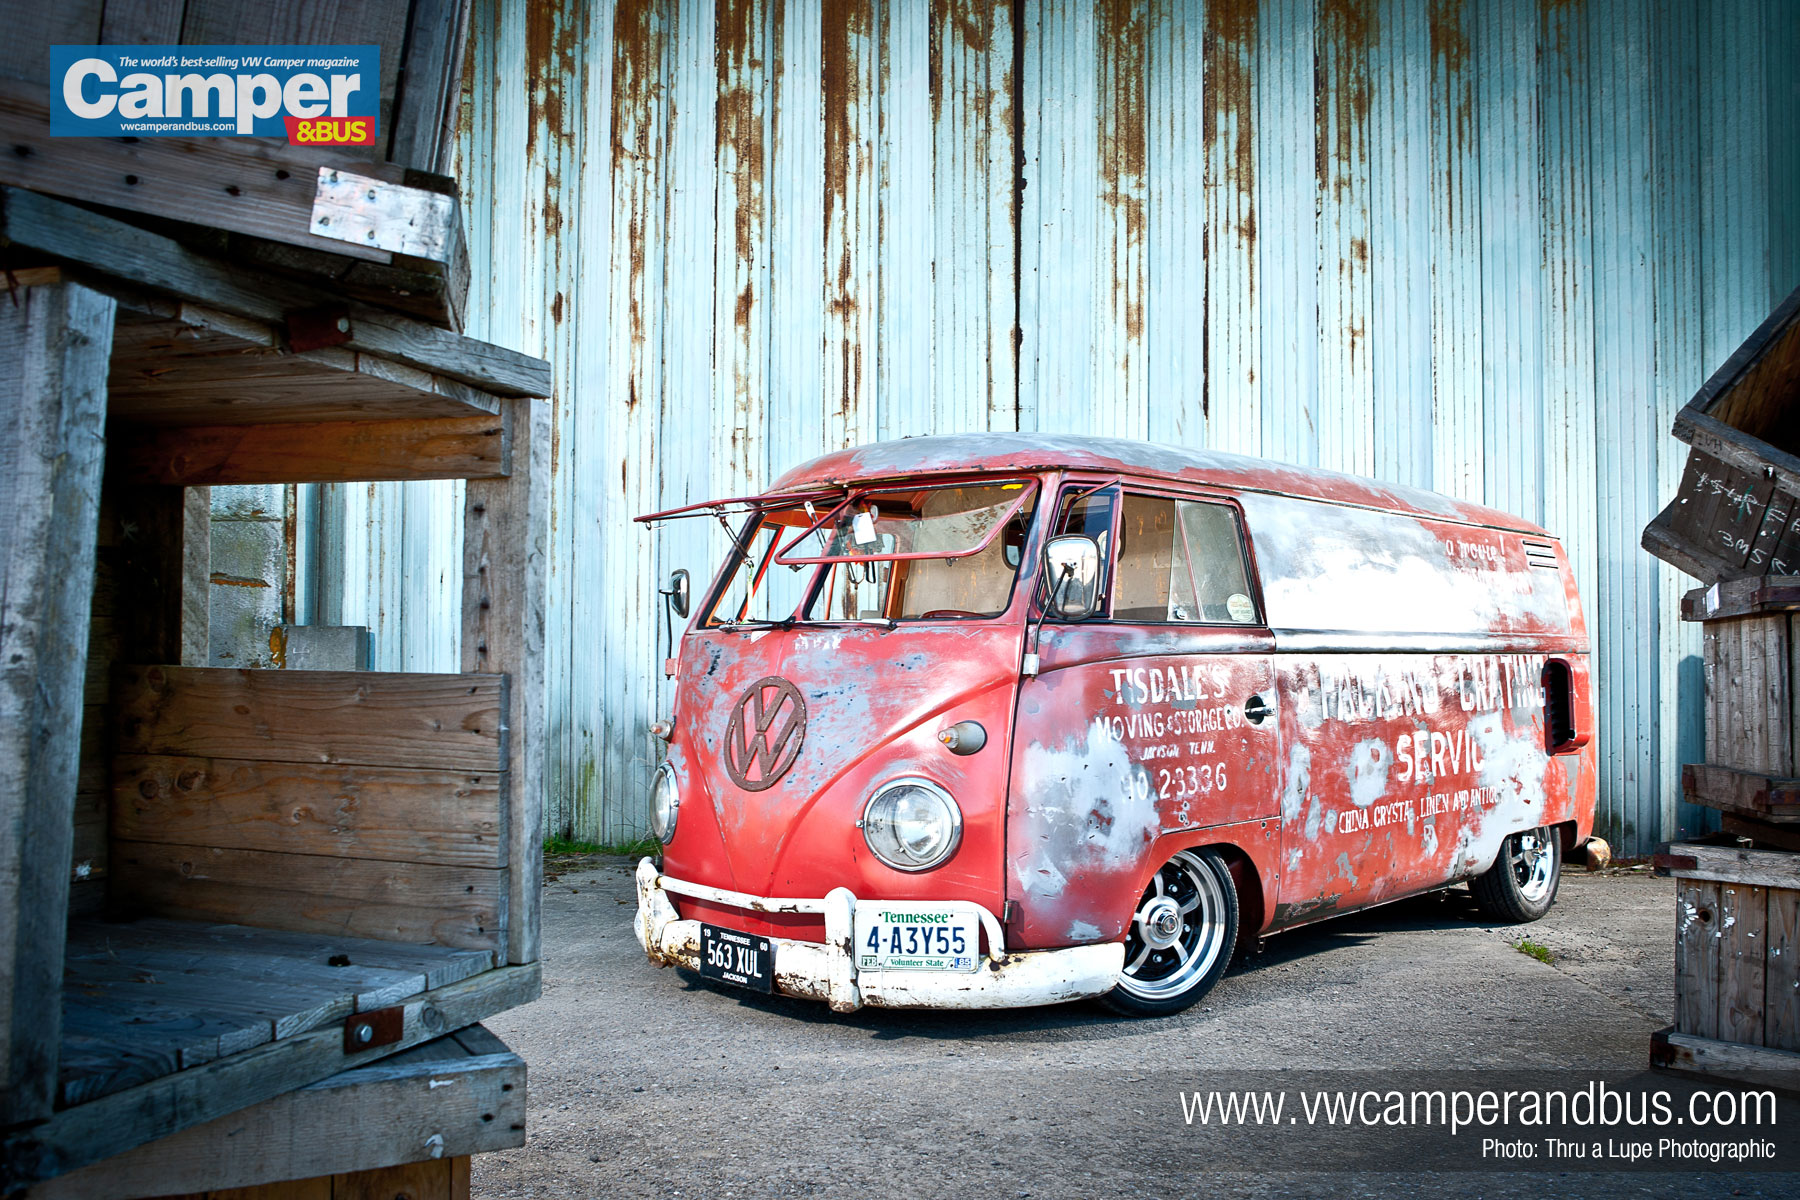 New Vw Bus Camper >> New batch of Camper wallpapers to download - VW Camper and Bus